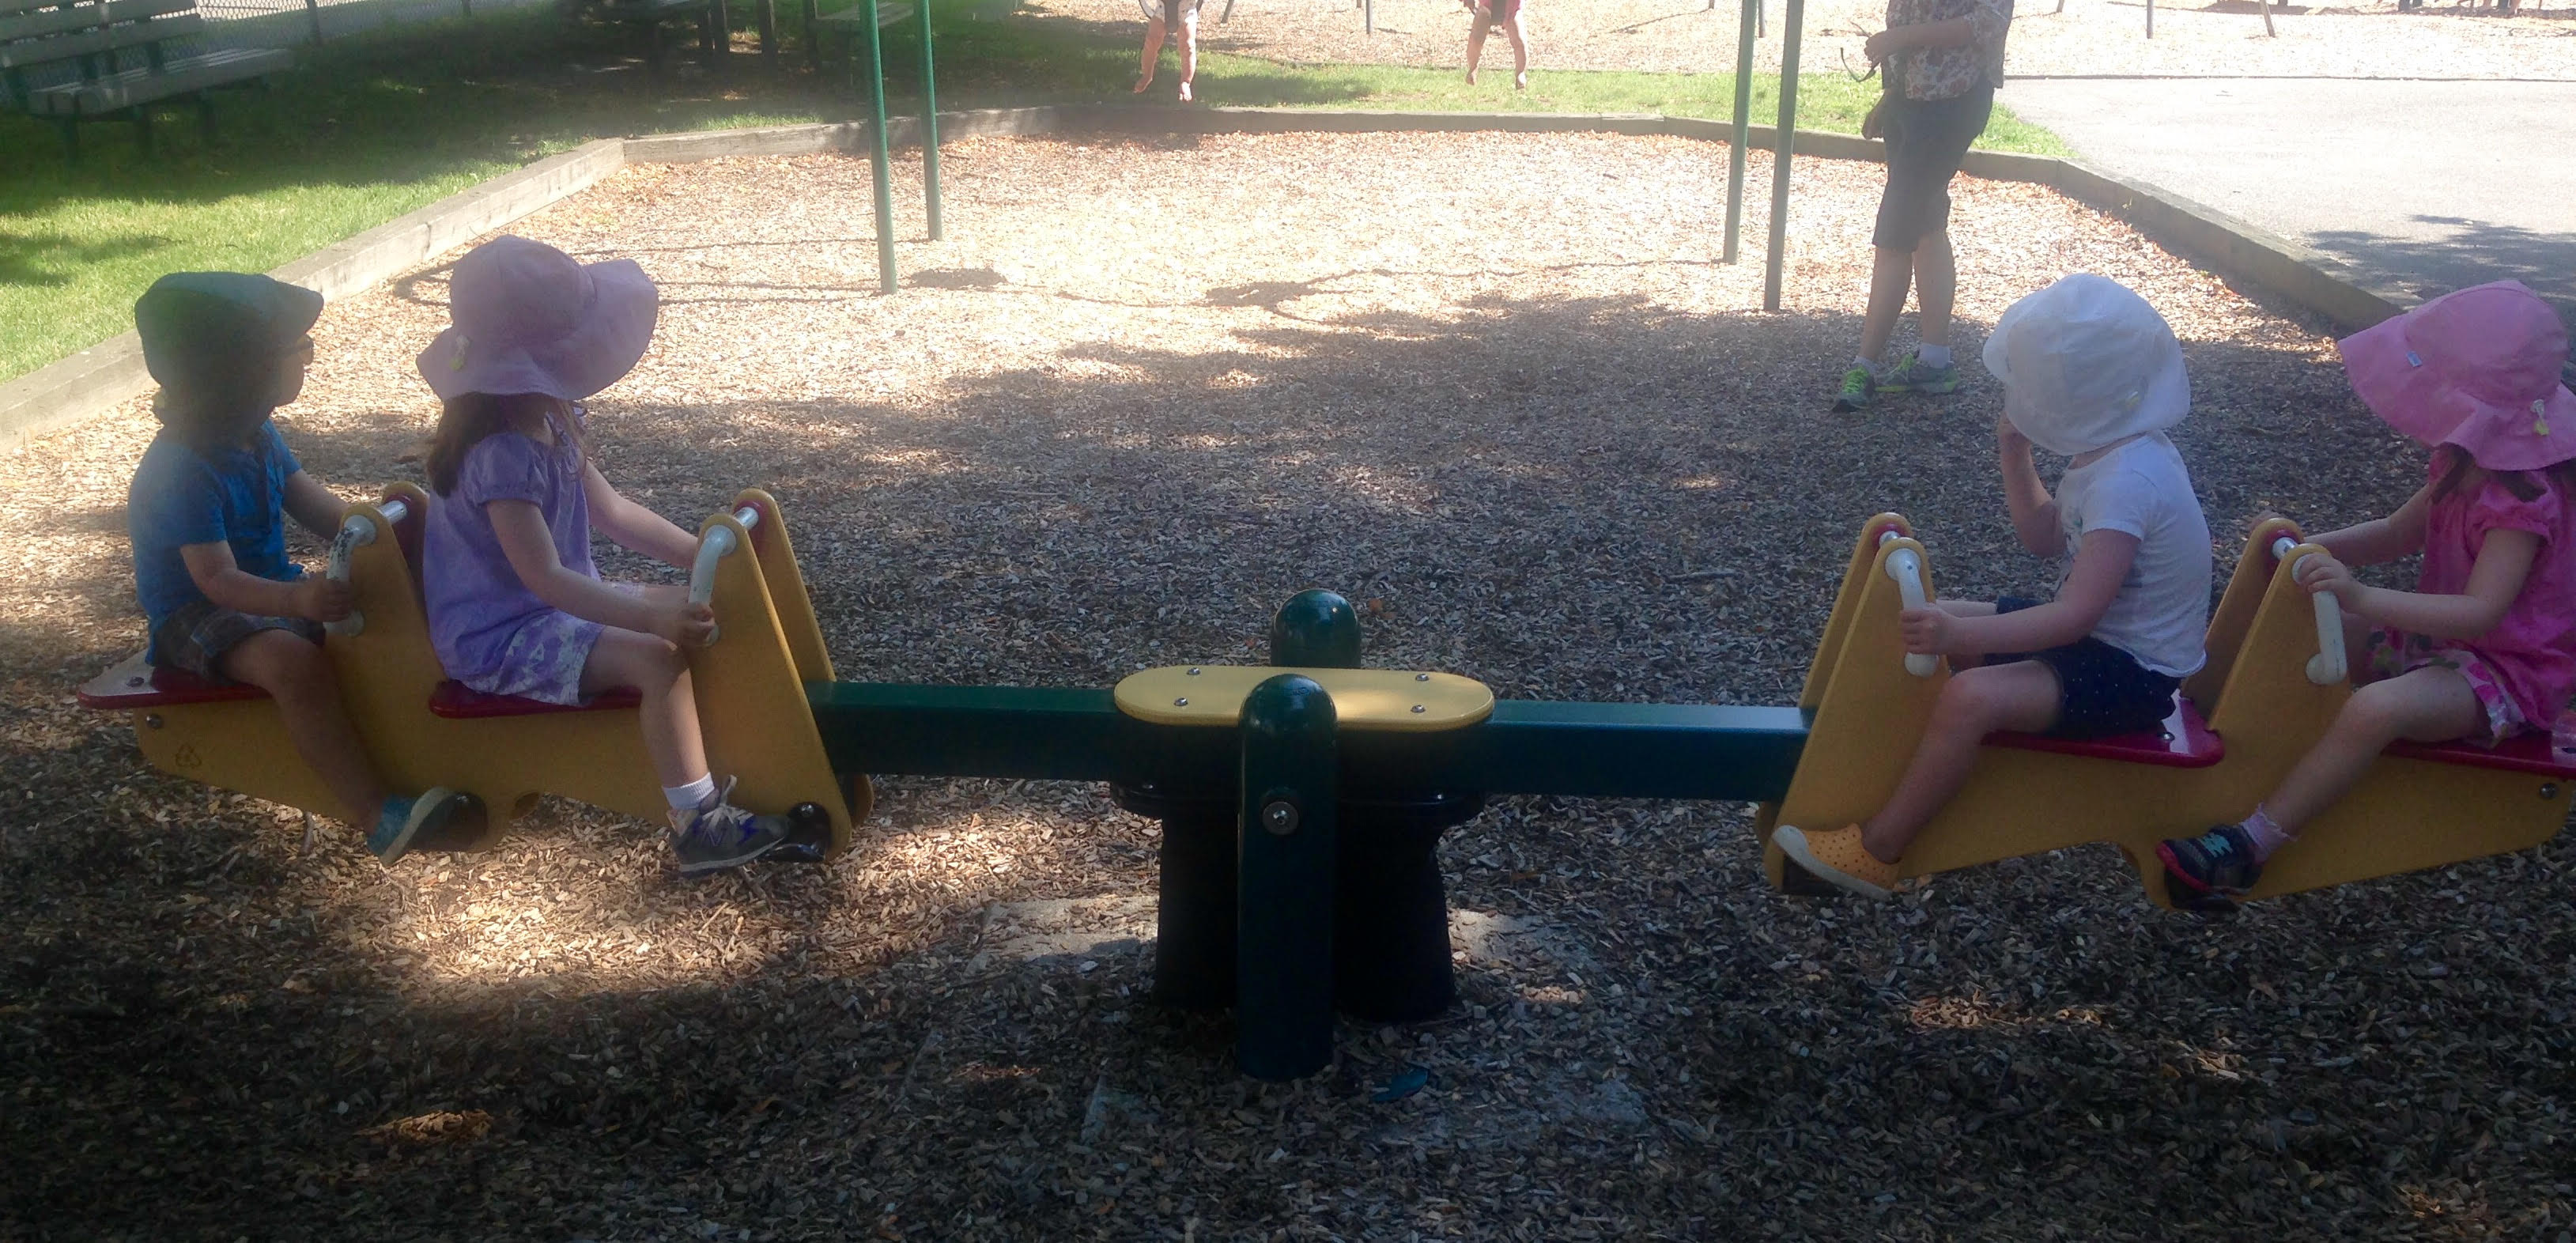 two sets of twins on a seesaw in a park